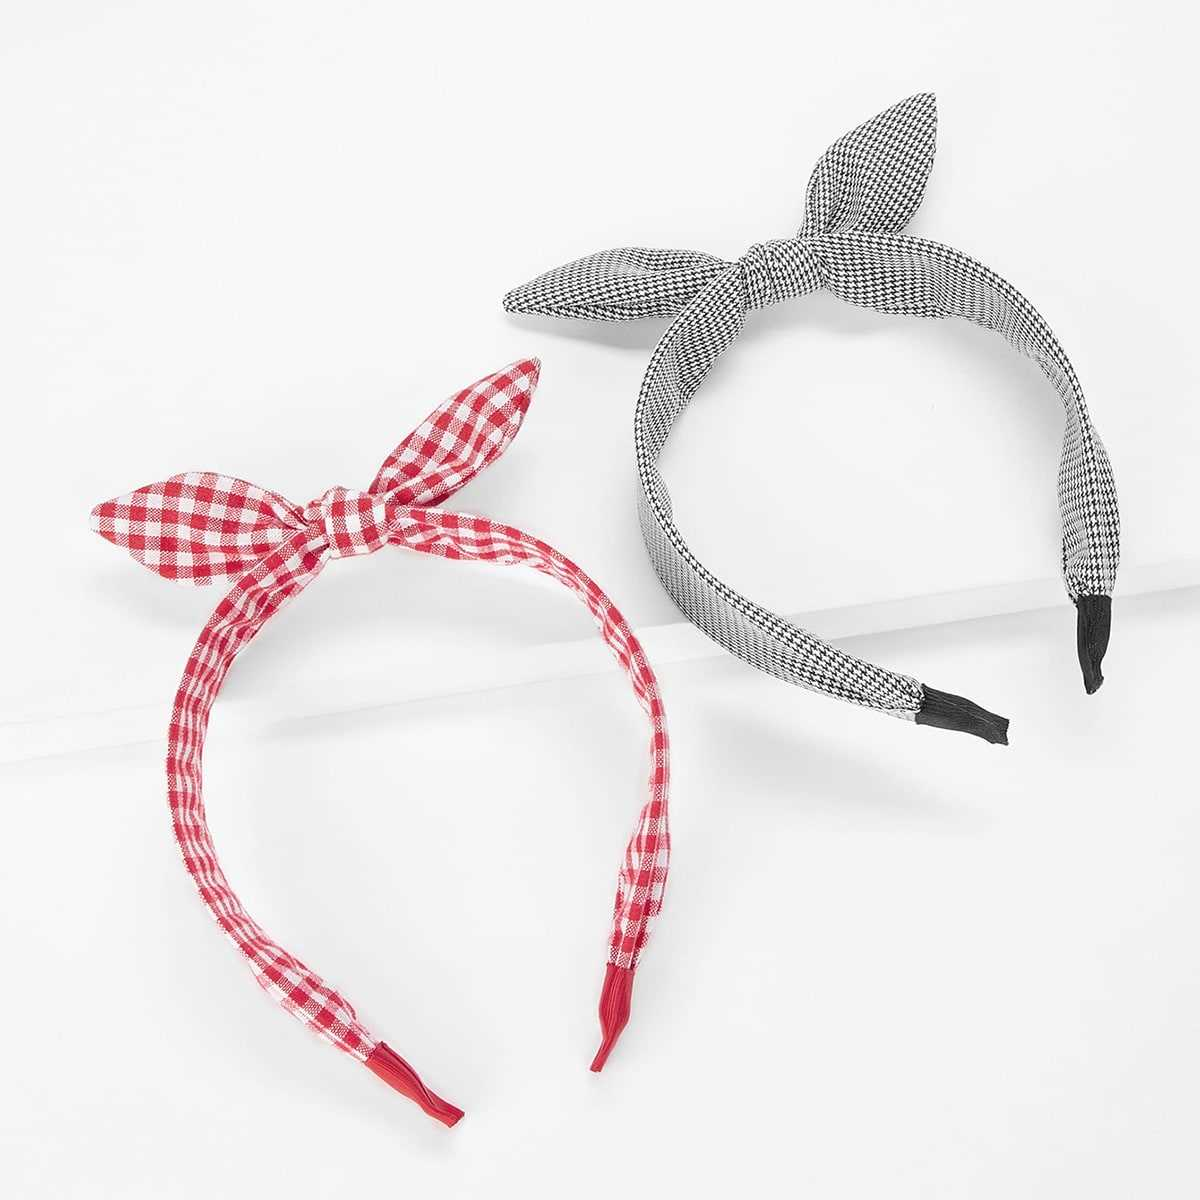 Bow Tie Plaid Headband 2pcs in Multicolor by ROMWE on GOOFASH